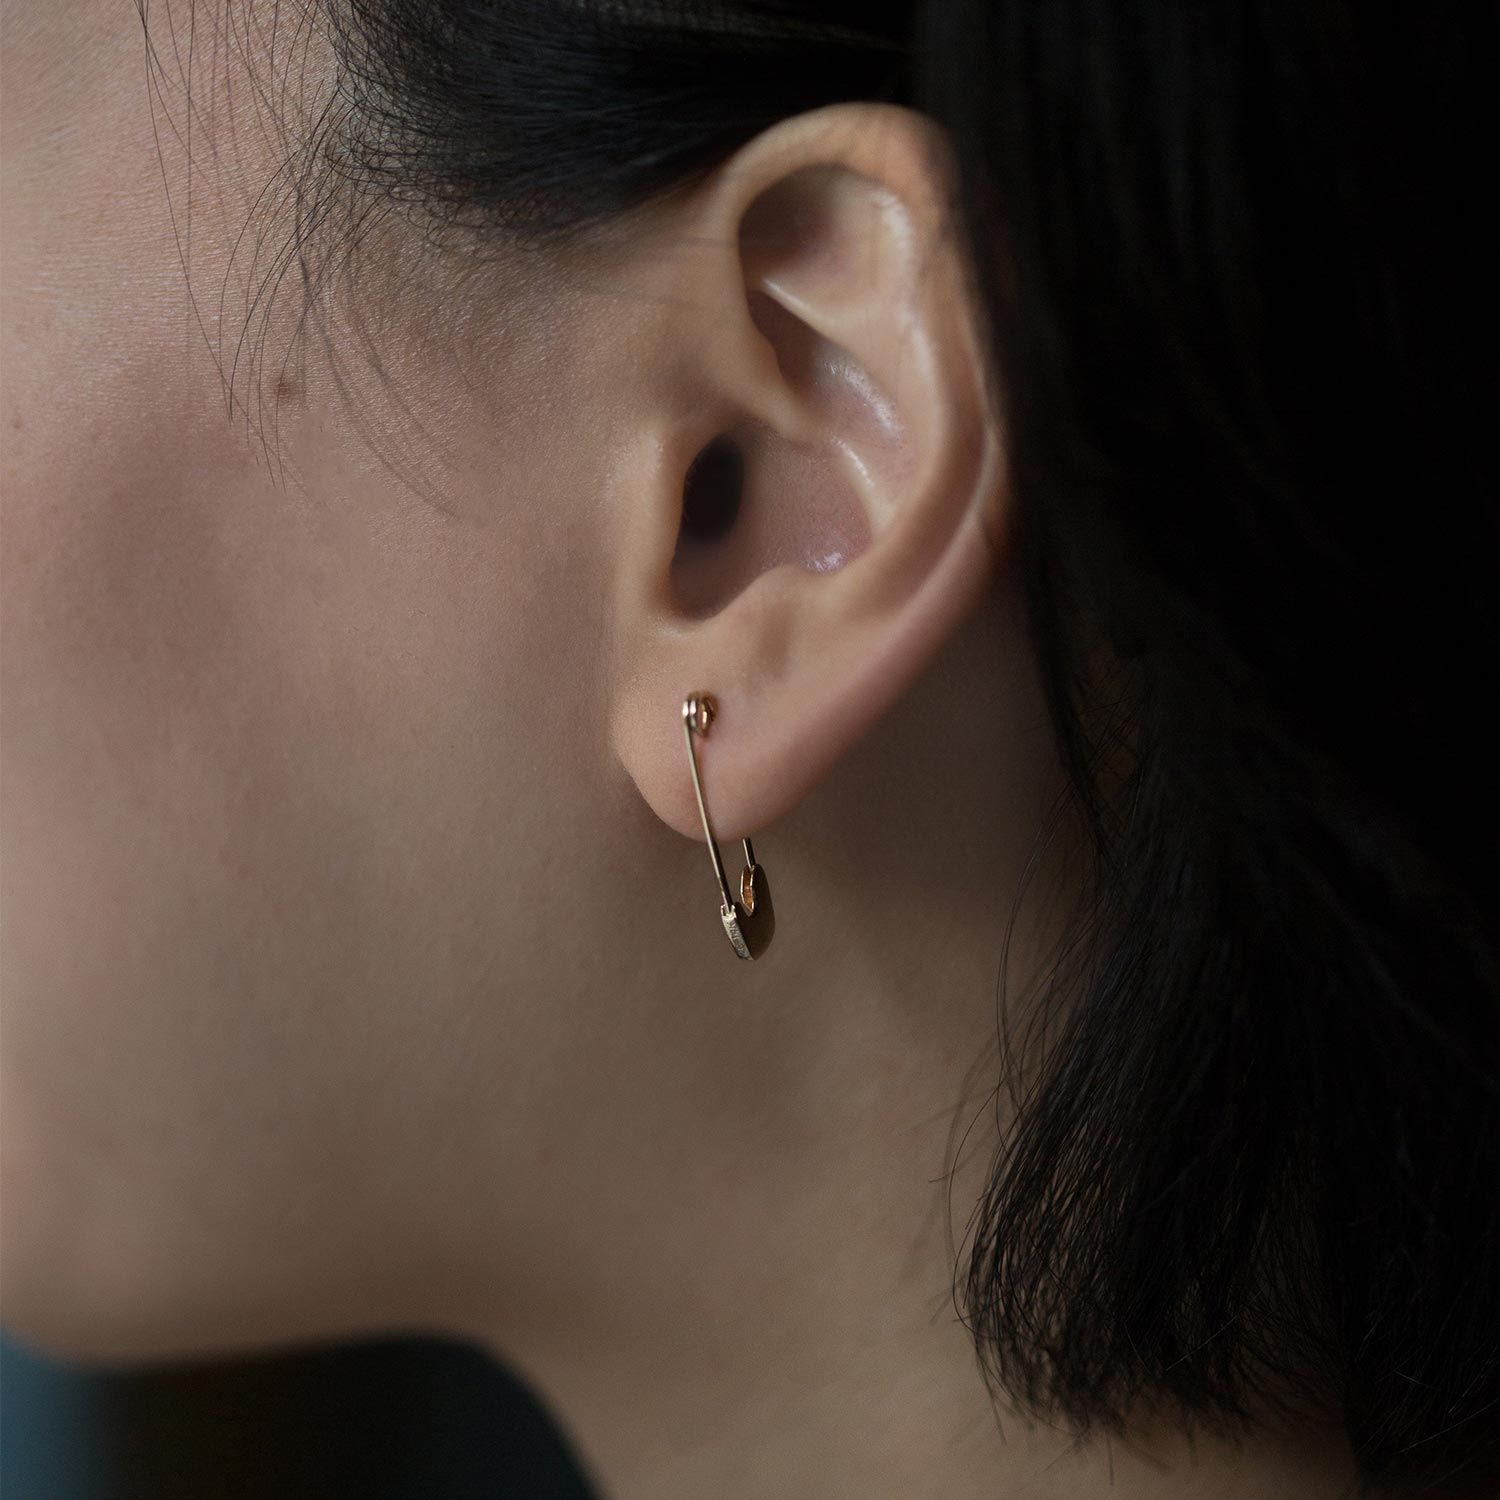 Gold Safety Pin Earring (Single) Safety pin earrings